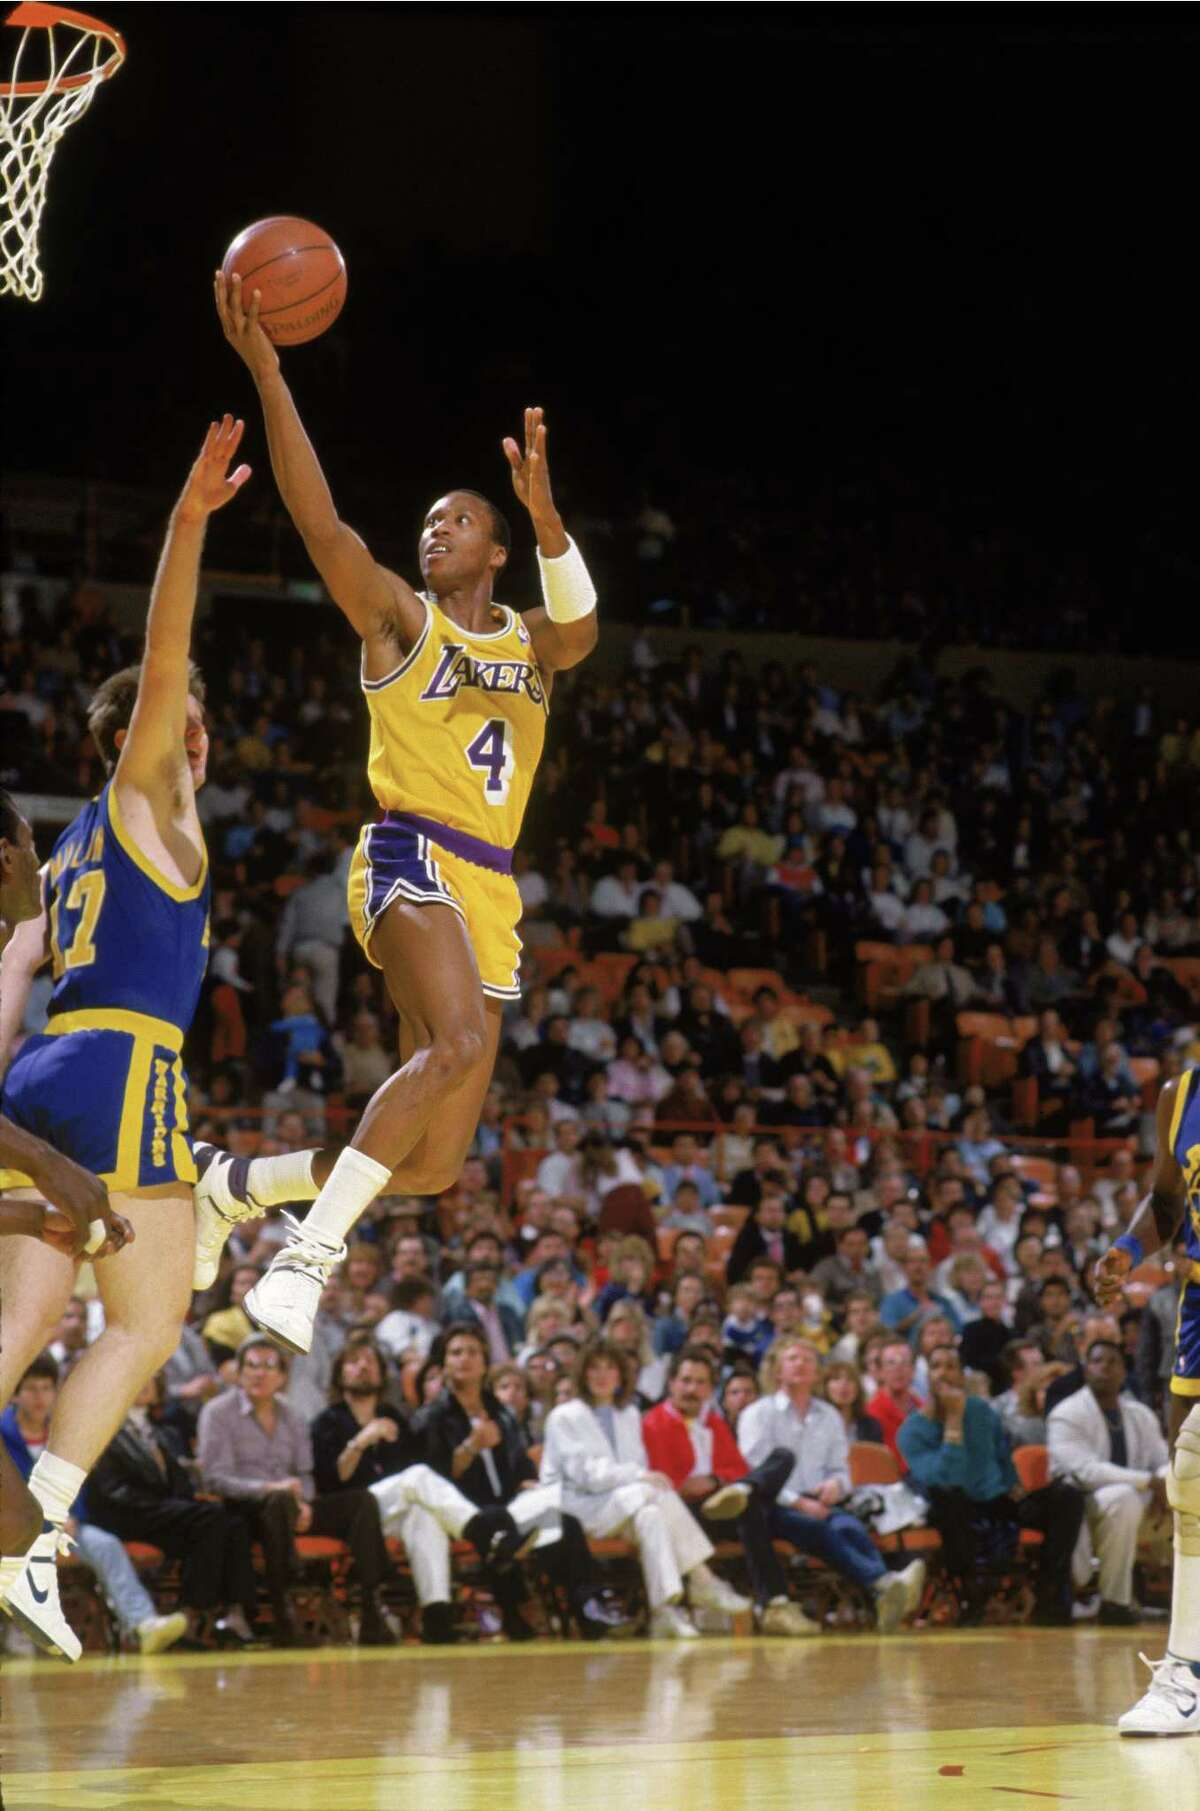 LOS ANGELES - 1987: Byron Scott #4 of the Los Angeles Lakers shoots over Chris Mullin #17 of the Golden State Warriors during an NBA game at the Great Western Forum in Los Angeles, California in 1987. (Photo by Stephen Dunn/Getty Images)